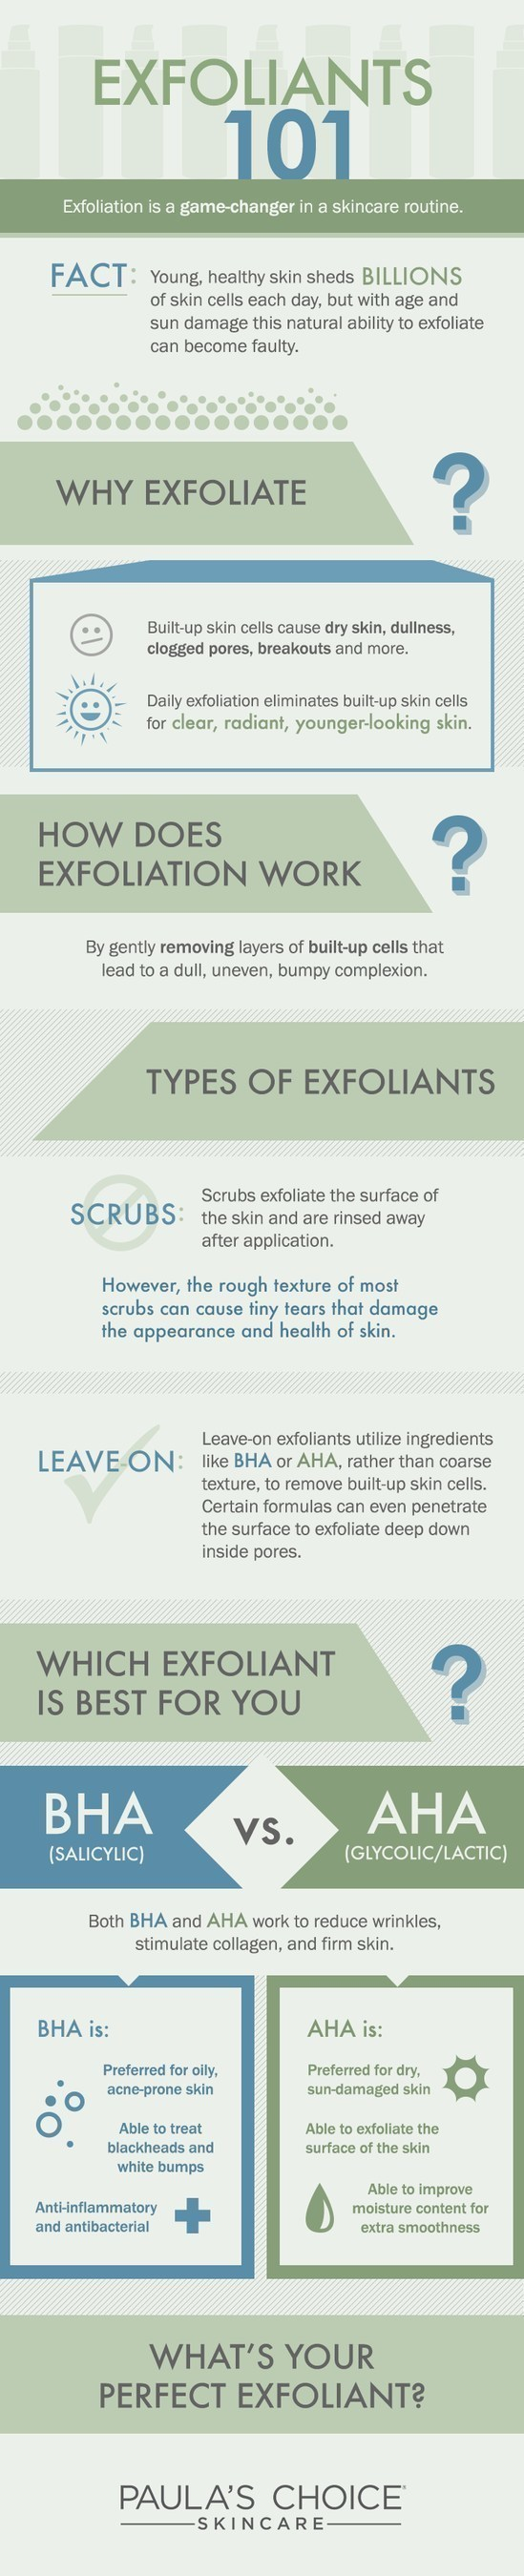 Learn how exfoliants can take your skin to a whole new level. (BPT)